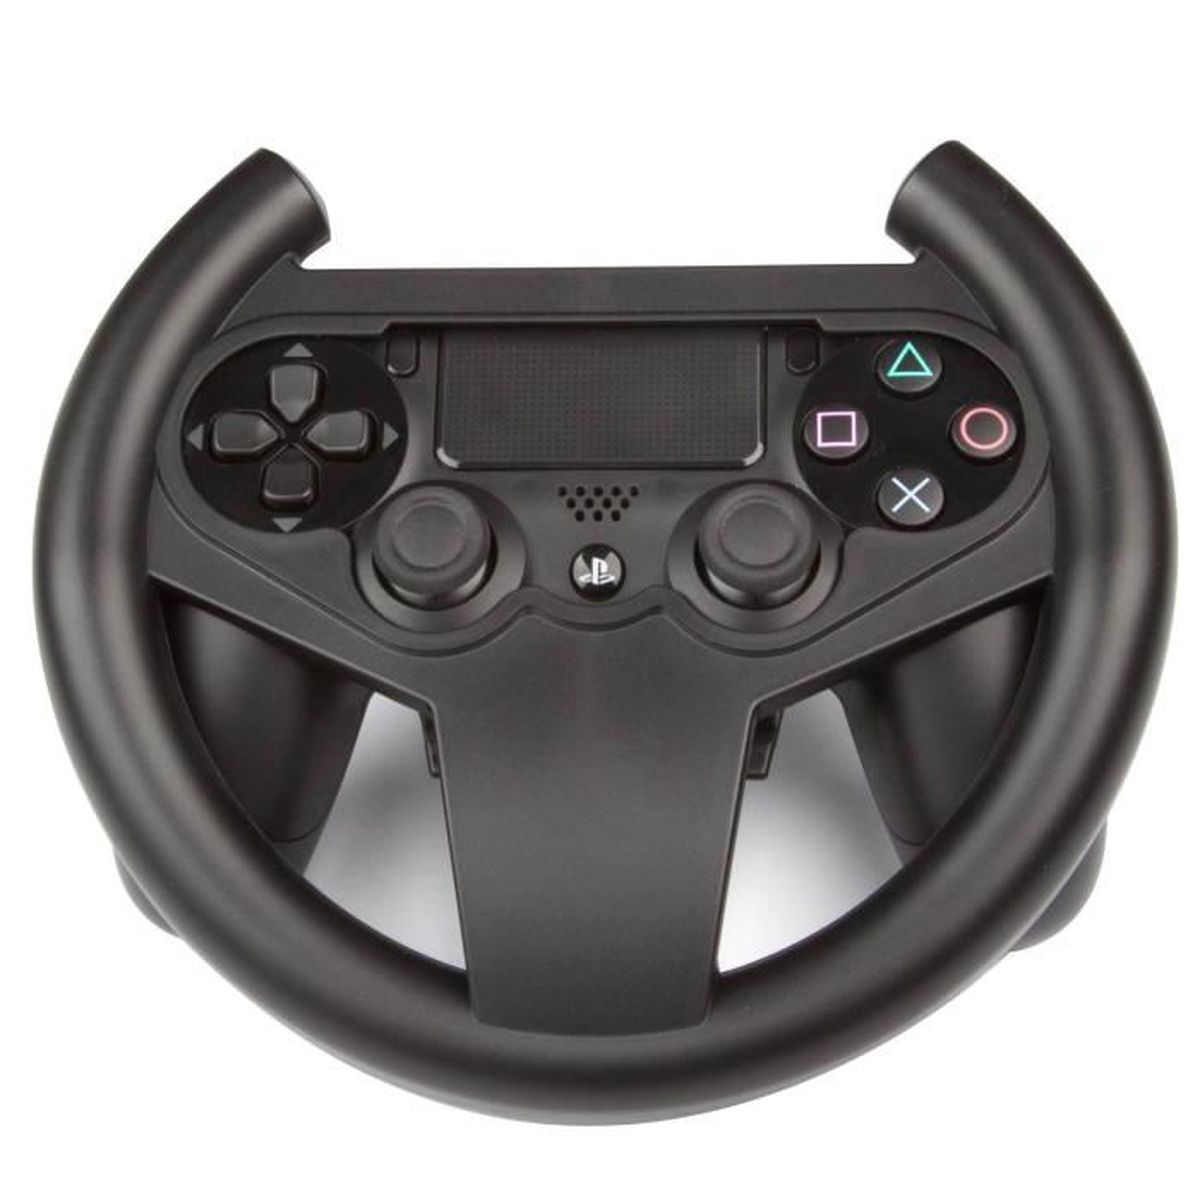 volant pour manette de jeu sur console ps4 id al pour les jeux de course need for speed. Black Bedroom Furniture Sets. Home Design Ideas